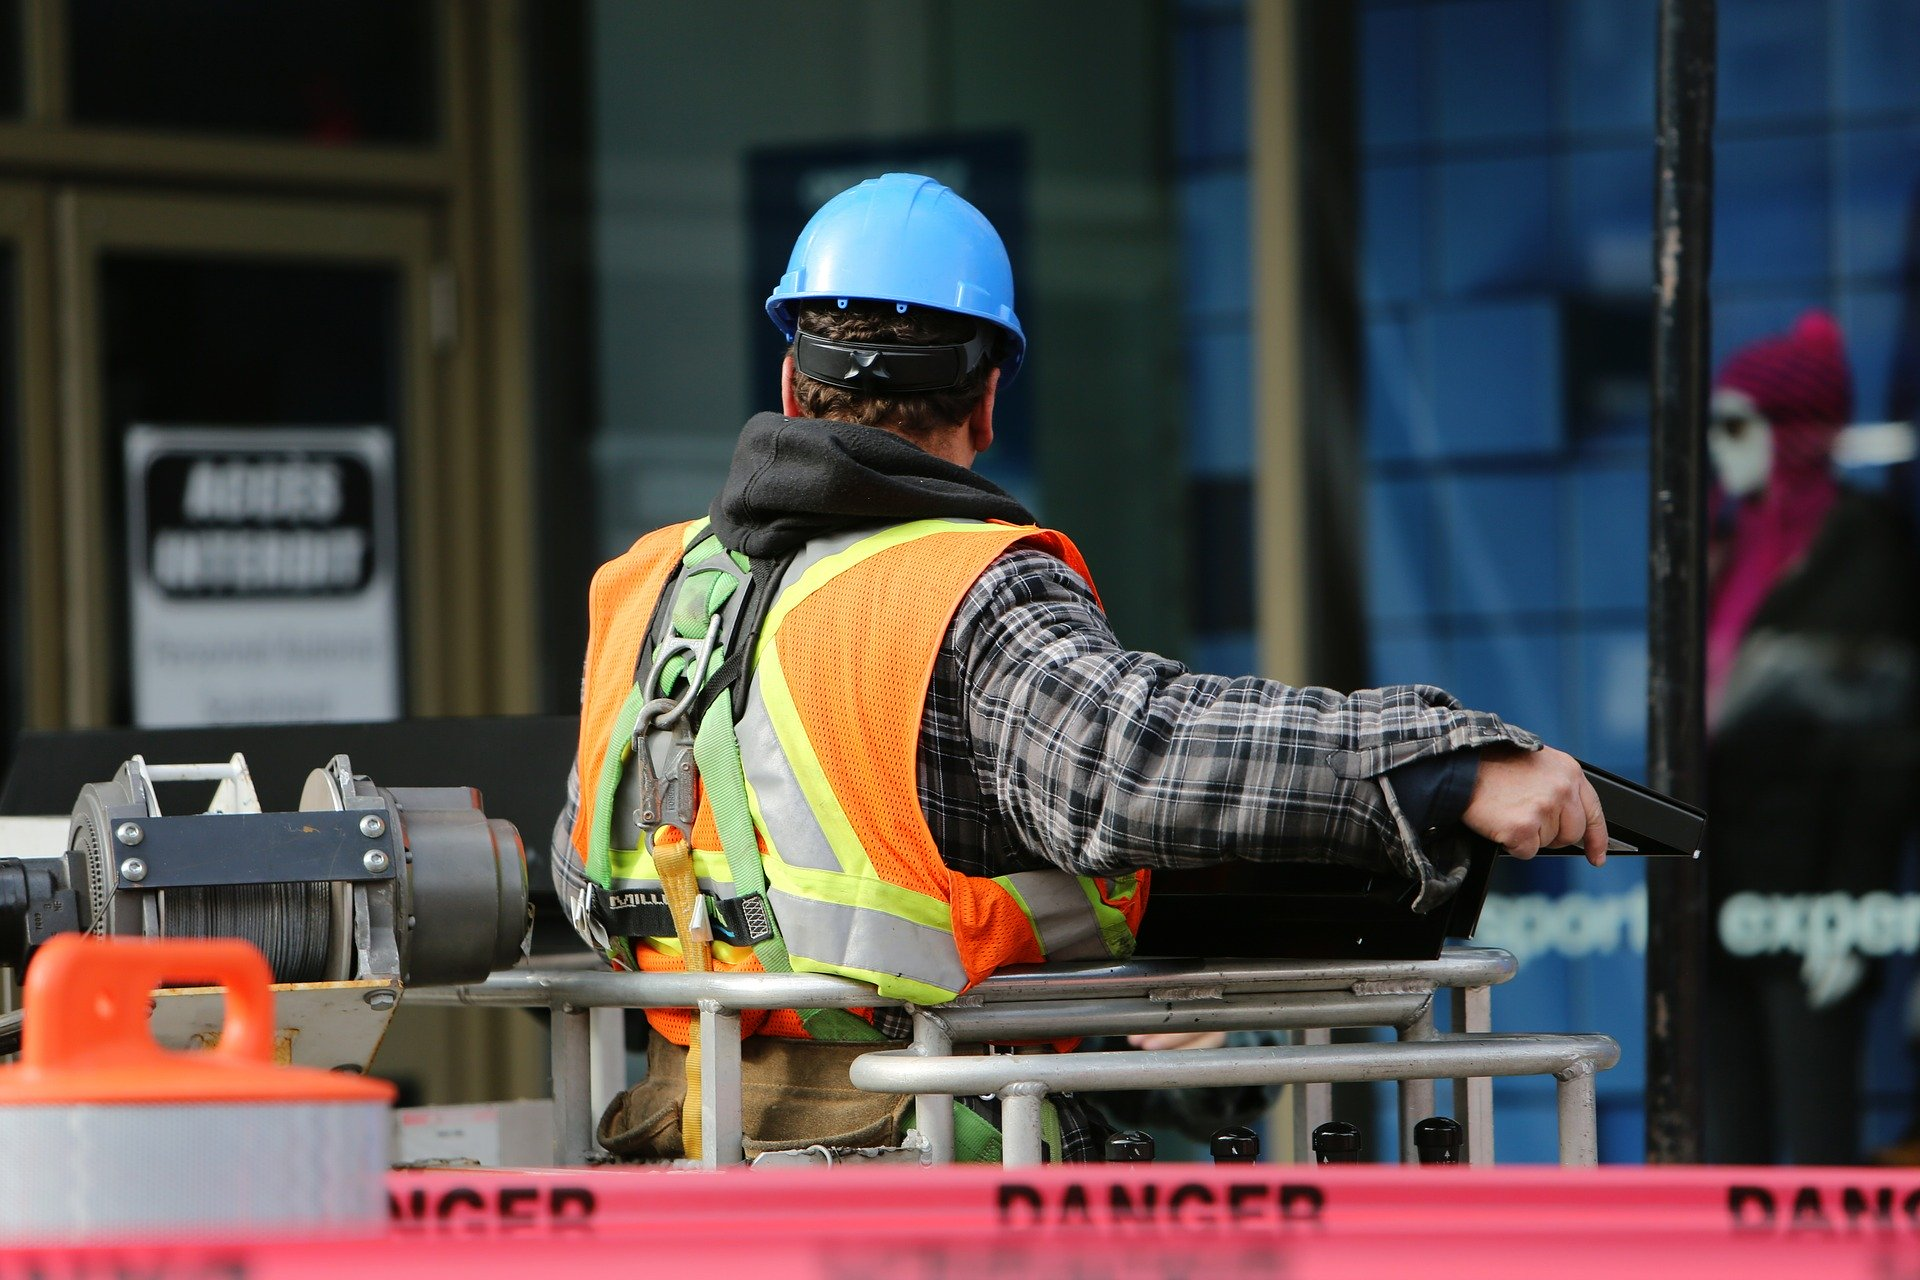 A contractor wearing protective equipment on a construction site